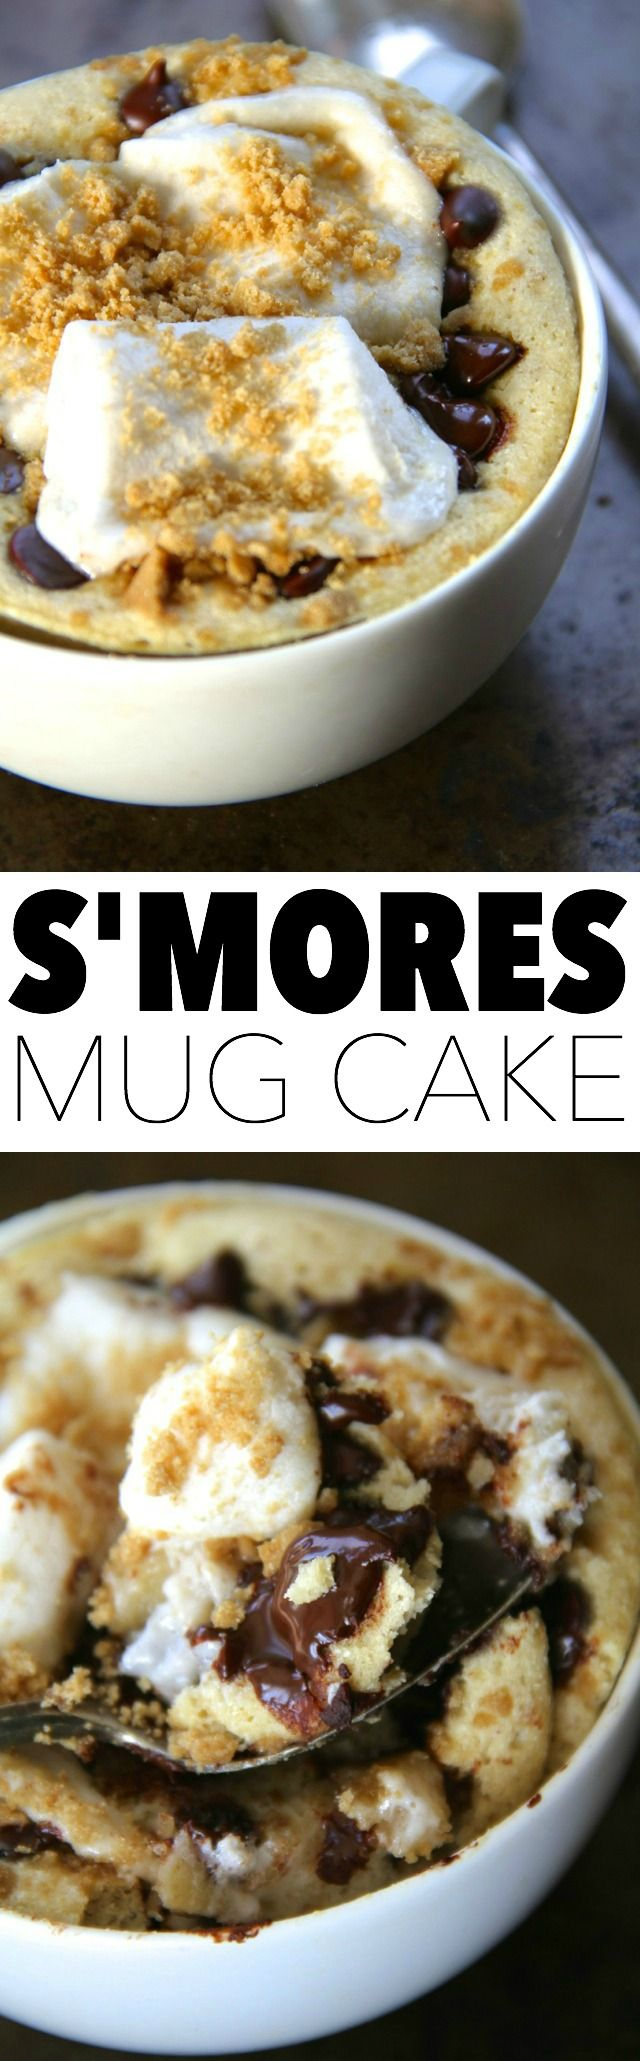 S'mores Mug Cake -- No campfire? no problem! Satisfy your s'mores craving with this soft and doughy campfire-free mug cake. Quick, easy, and made without butter or oil, it makes a perfect single-serve snack!    runningwithspoons.com #s'mores #mugcake #snack